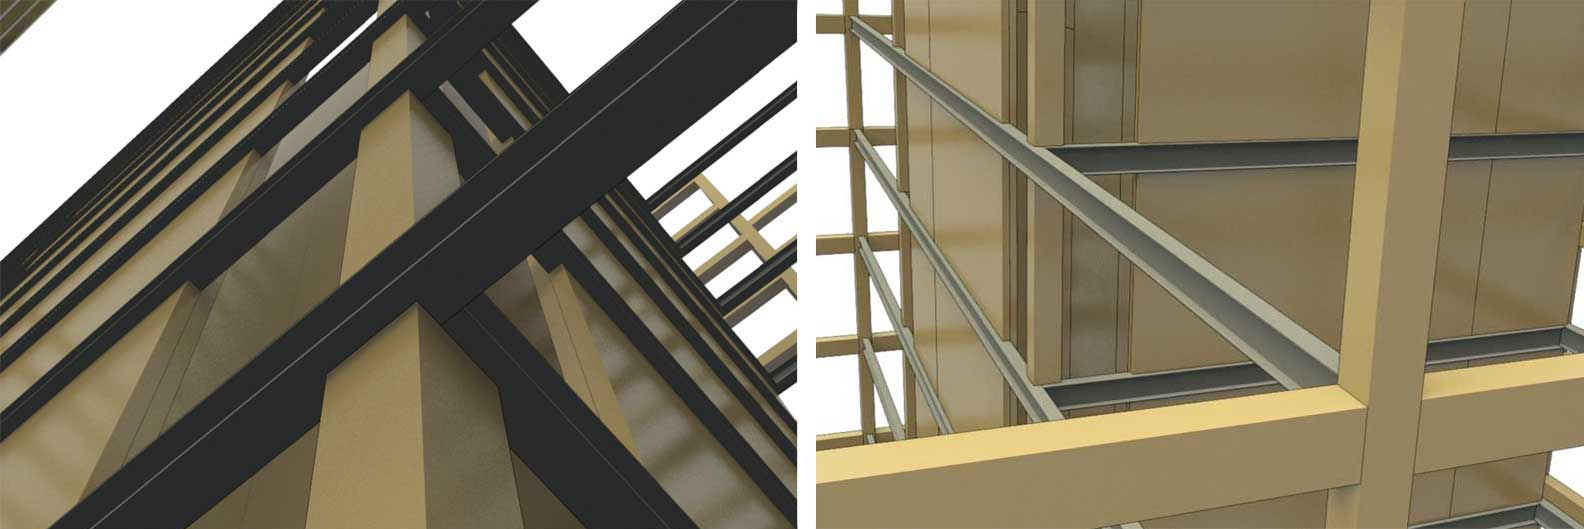 These images show close-up examples of a solid wood panel core and intersecting ductile steel link beams in a wood building standing one to 12 stories.